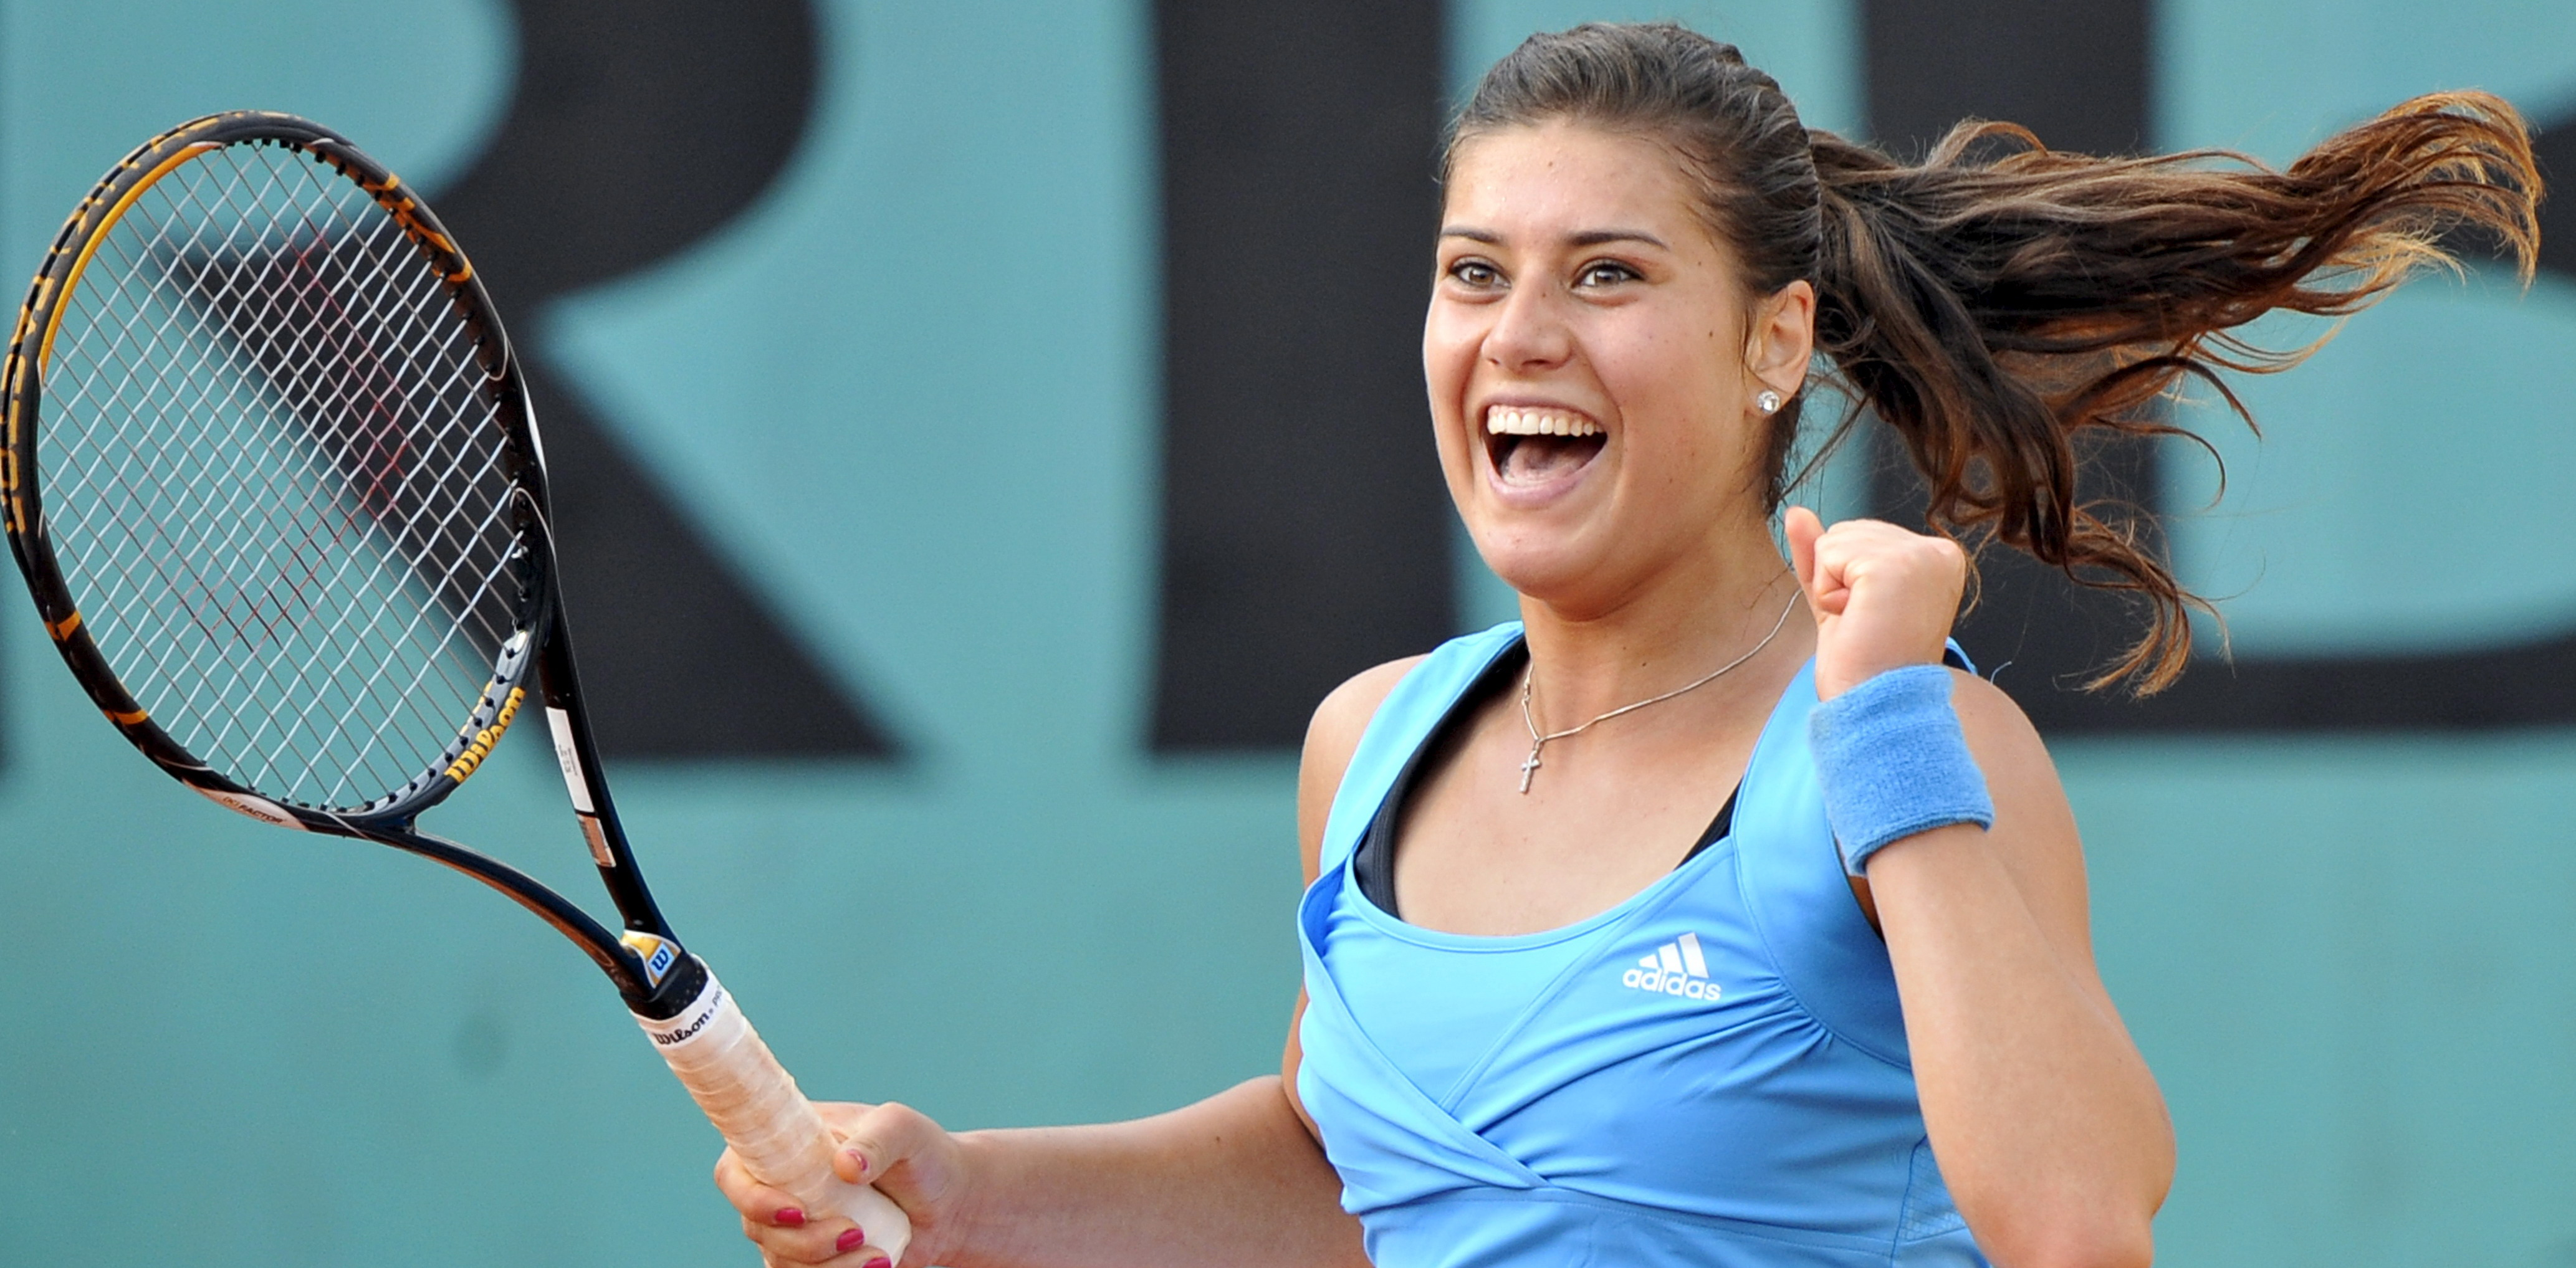 epa01748430 Romania's Sorana Cirstea celebrates winning against Serbia's Jelena Jankovic during their fourth round match for the French Open tennis tournament at Roland Garros in Paris, France, 01 June 2009.  EPA/HORACIO VILLALOBOS